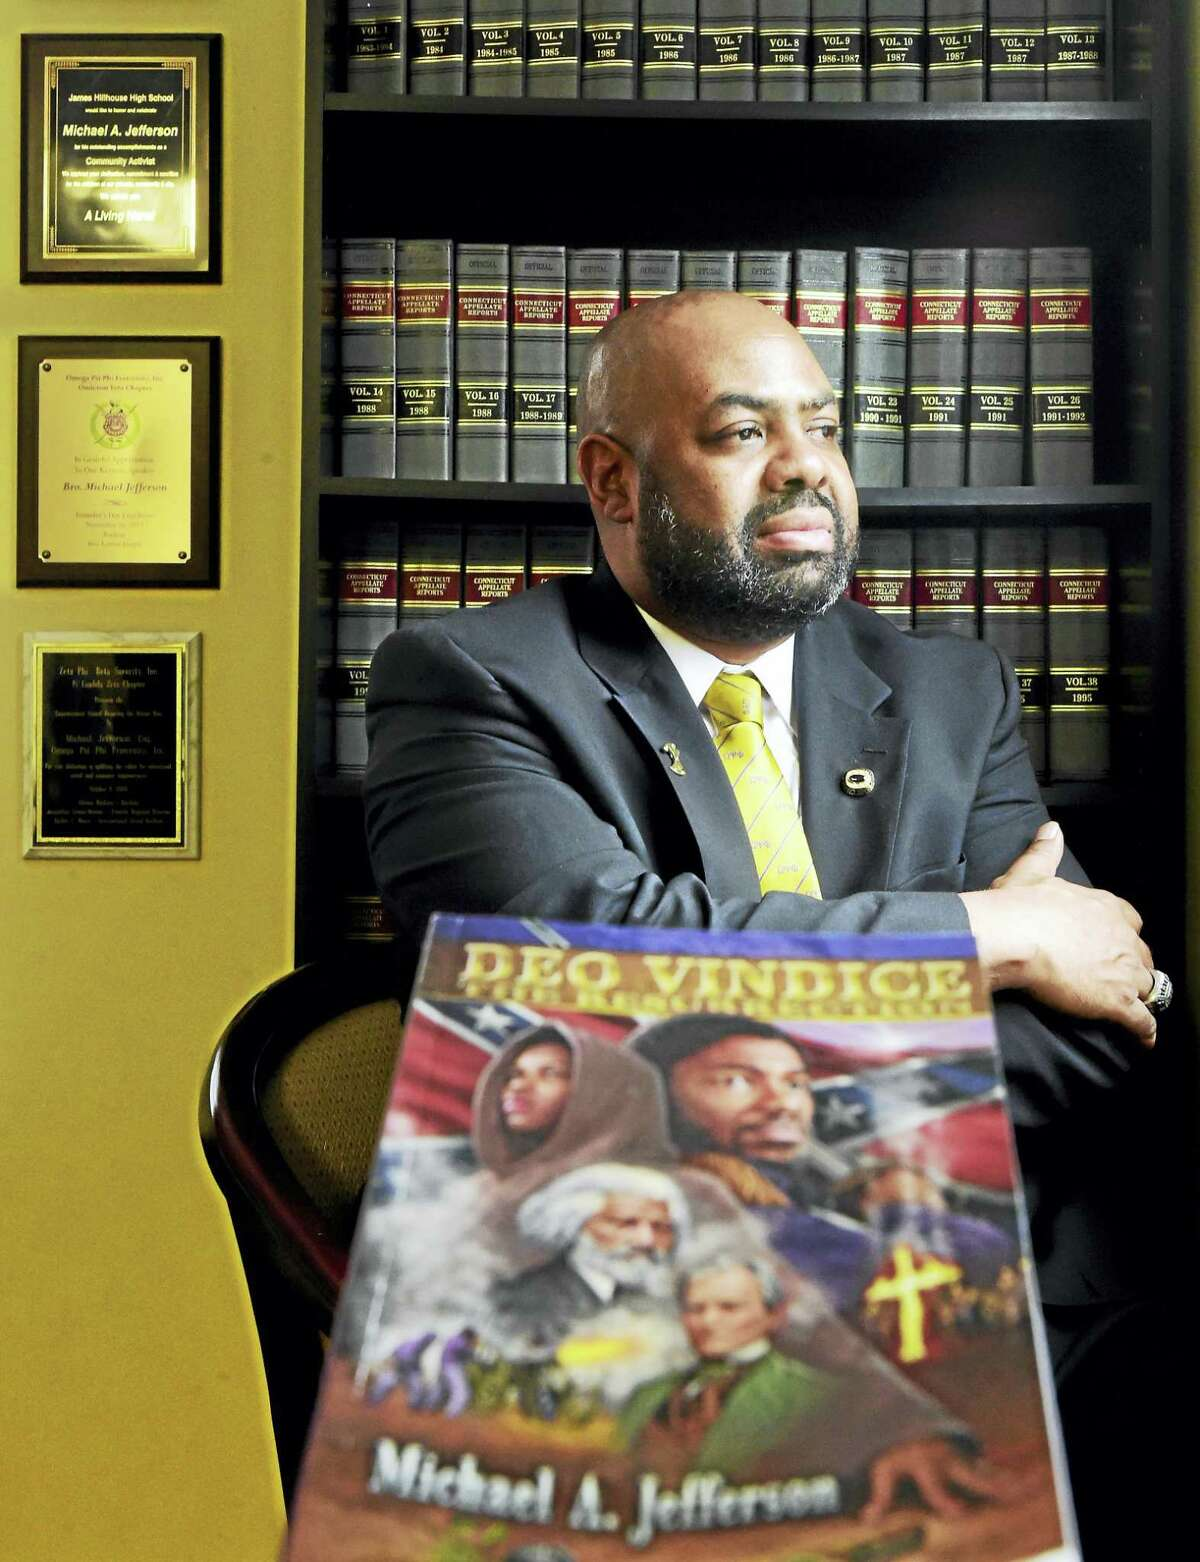 """(Peter Hvizdak - New Haven Register) Lawyer Michael Jefferson, author of """"Deo Vindice, The Resurrection"""" in his East Haven office recently."""